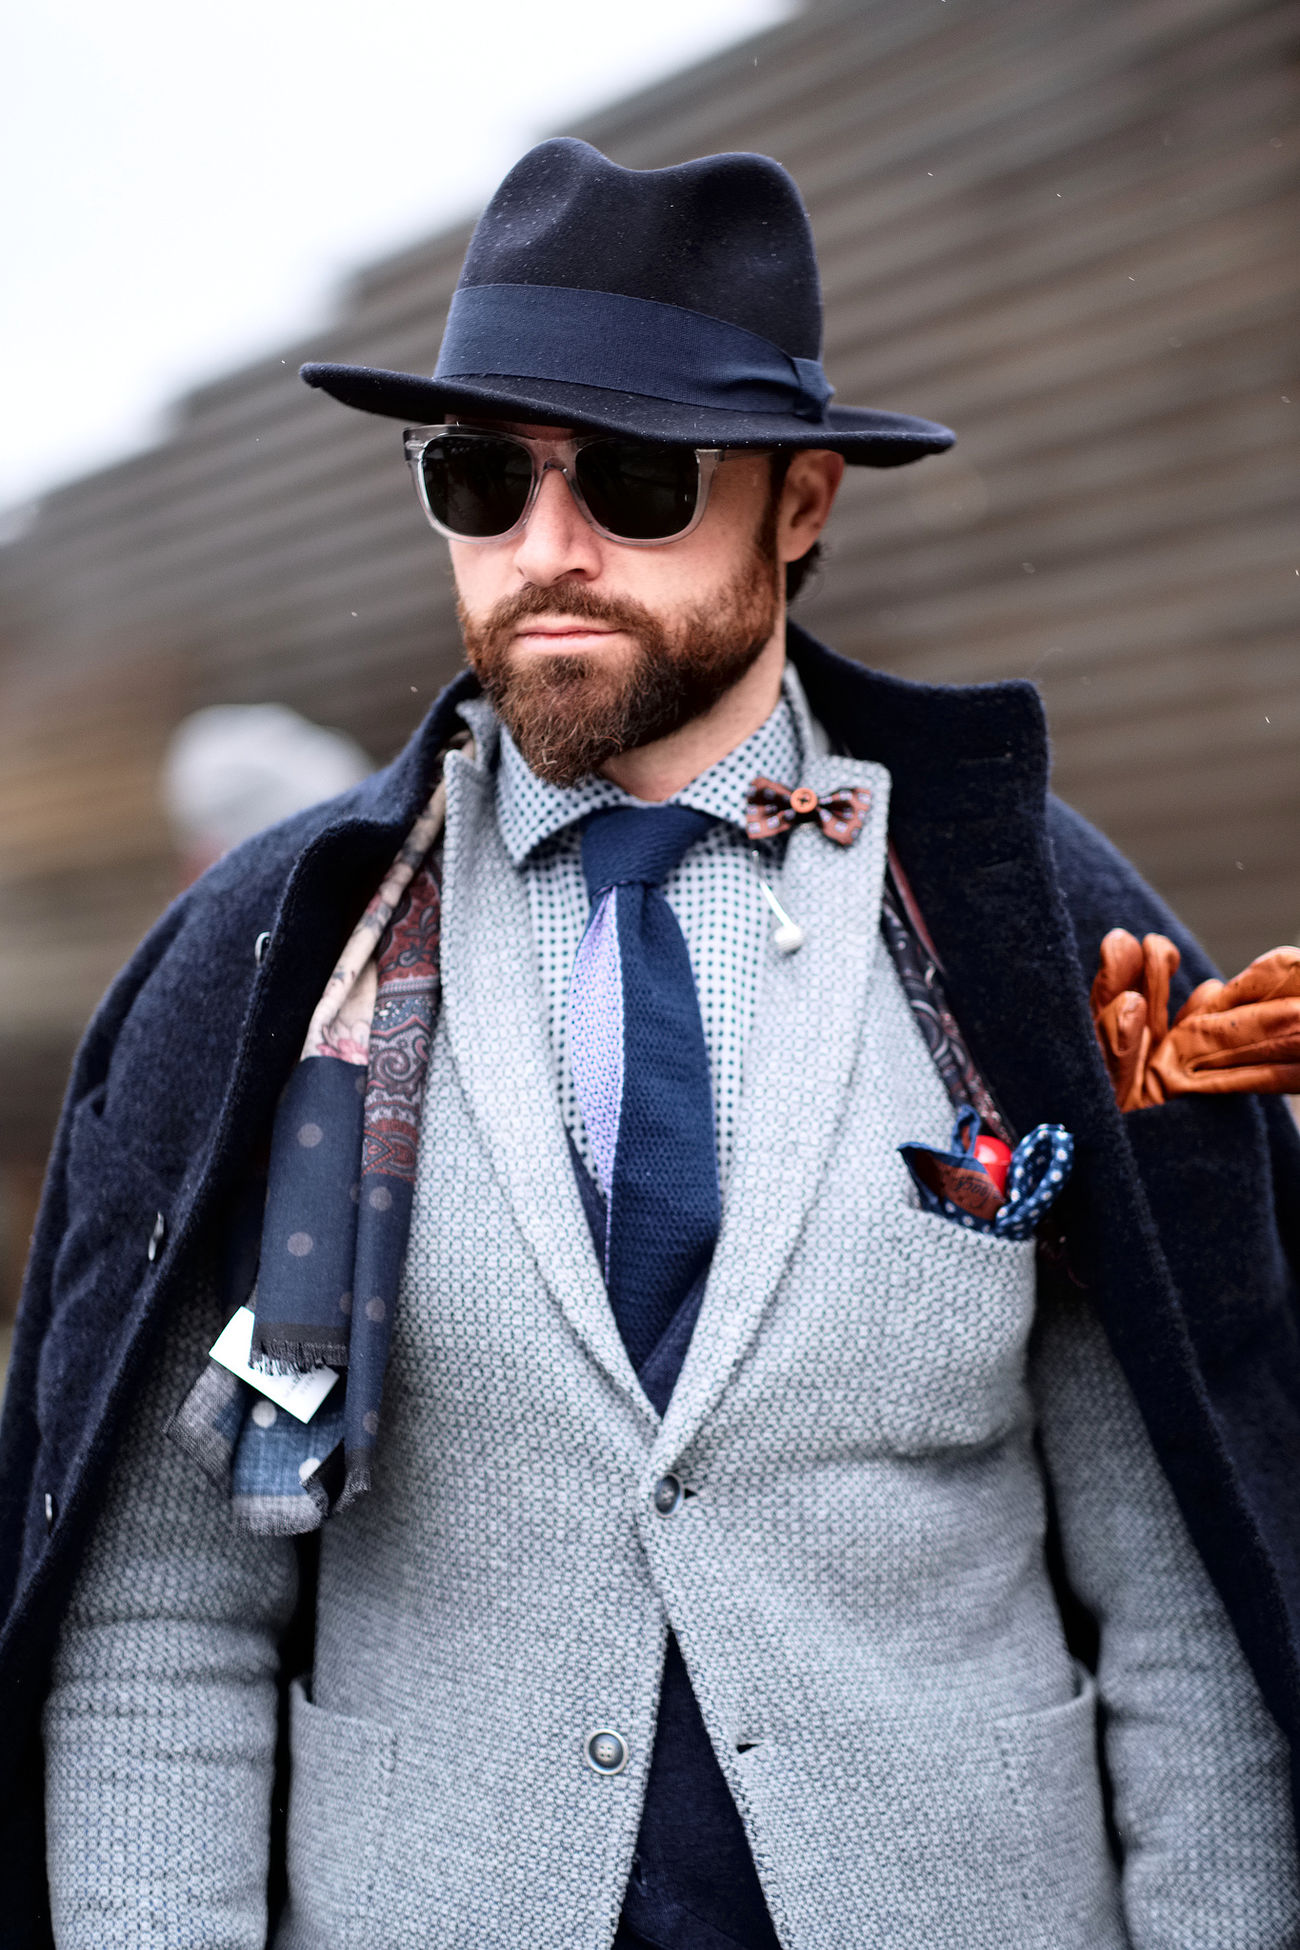 Picture of Fadi taken at the 91th edition of Pitti Immagine Uomo in Florence. Check out my blog for the full story! Beard Fashion Fashion Fashionable Front View Glasses Hat Male Men Outdoors Rain Rainy Days Real People Streetstyle Style